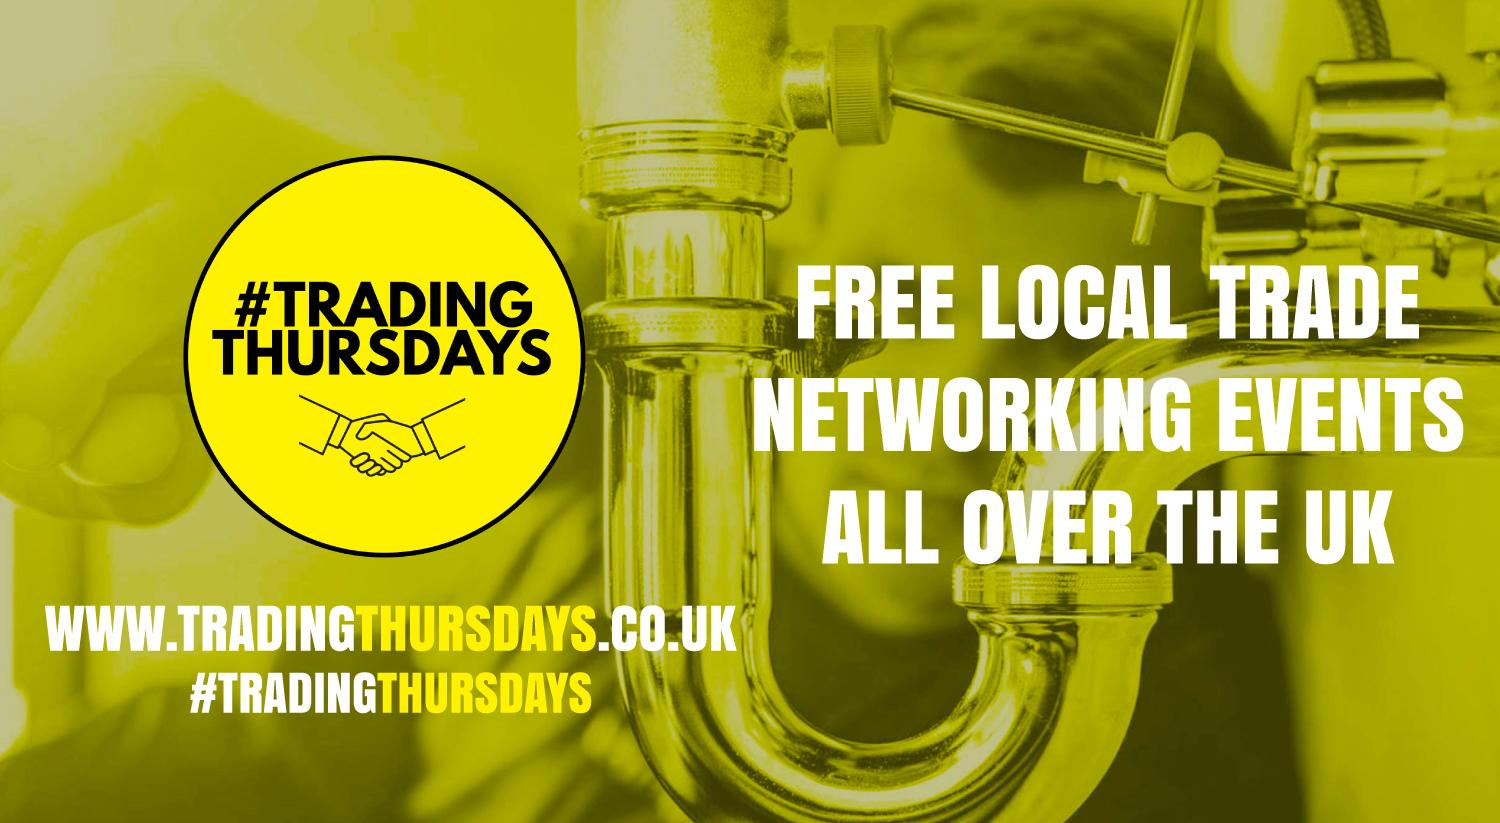 Trading Thursdays! Free networking event for traders in Loughborough